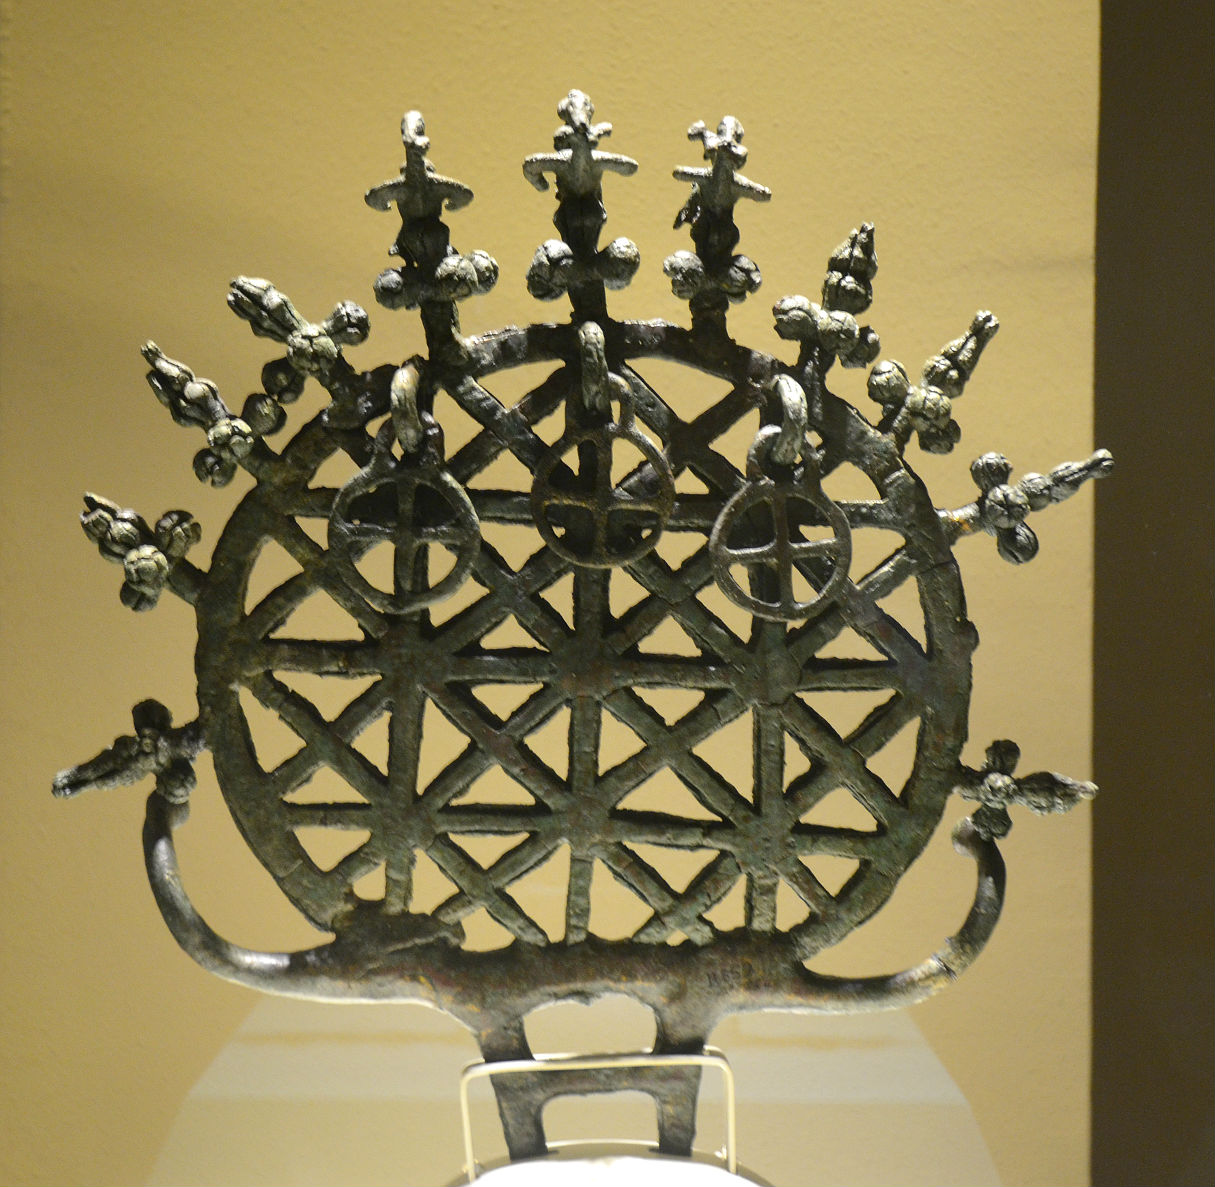 The most famous Hittite sun disc standard